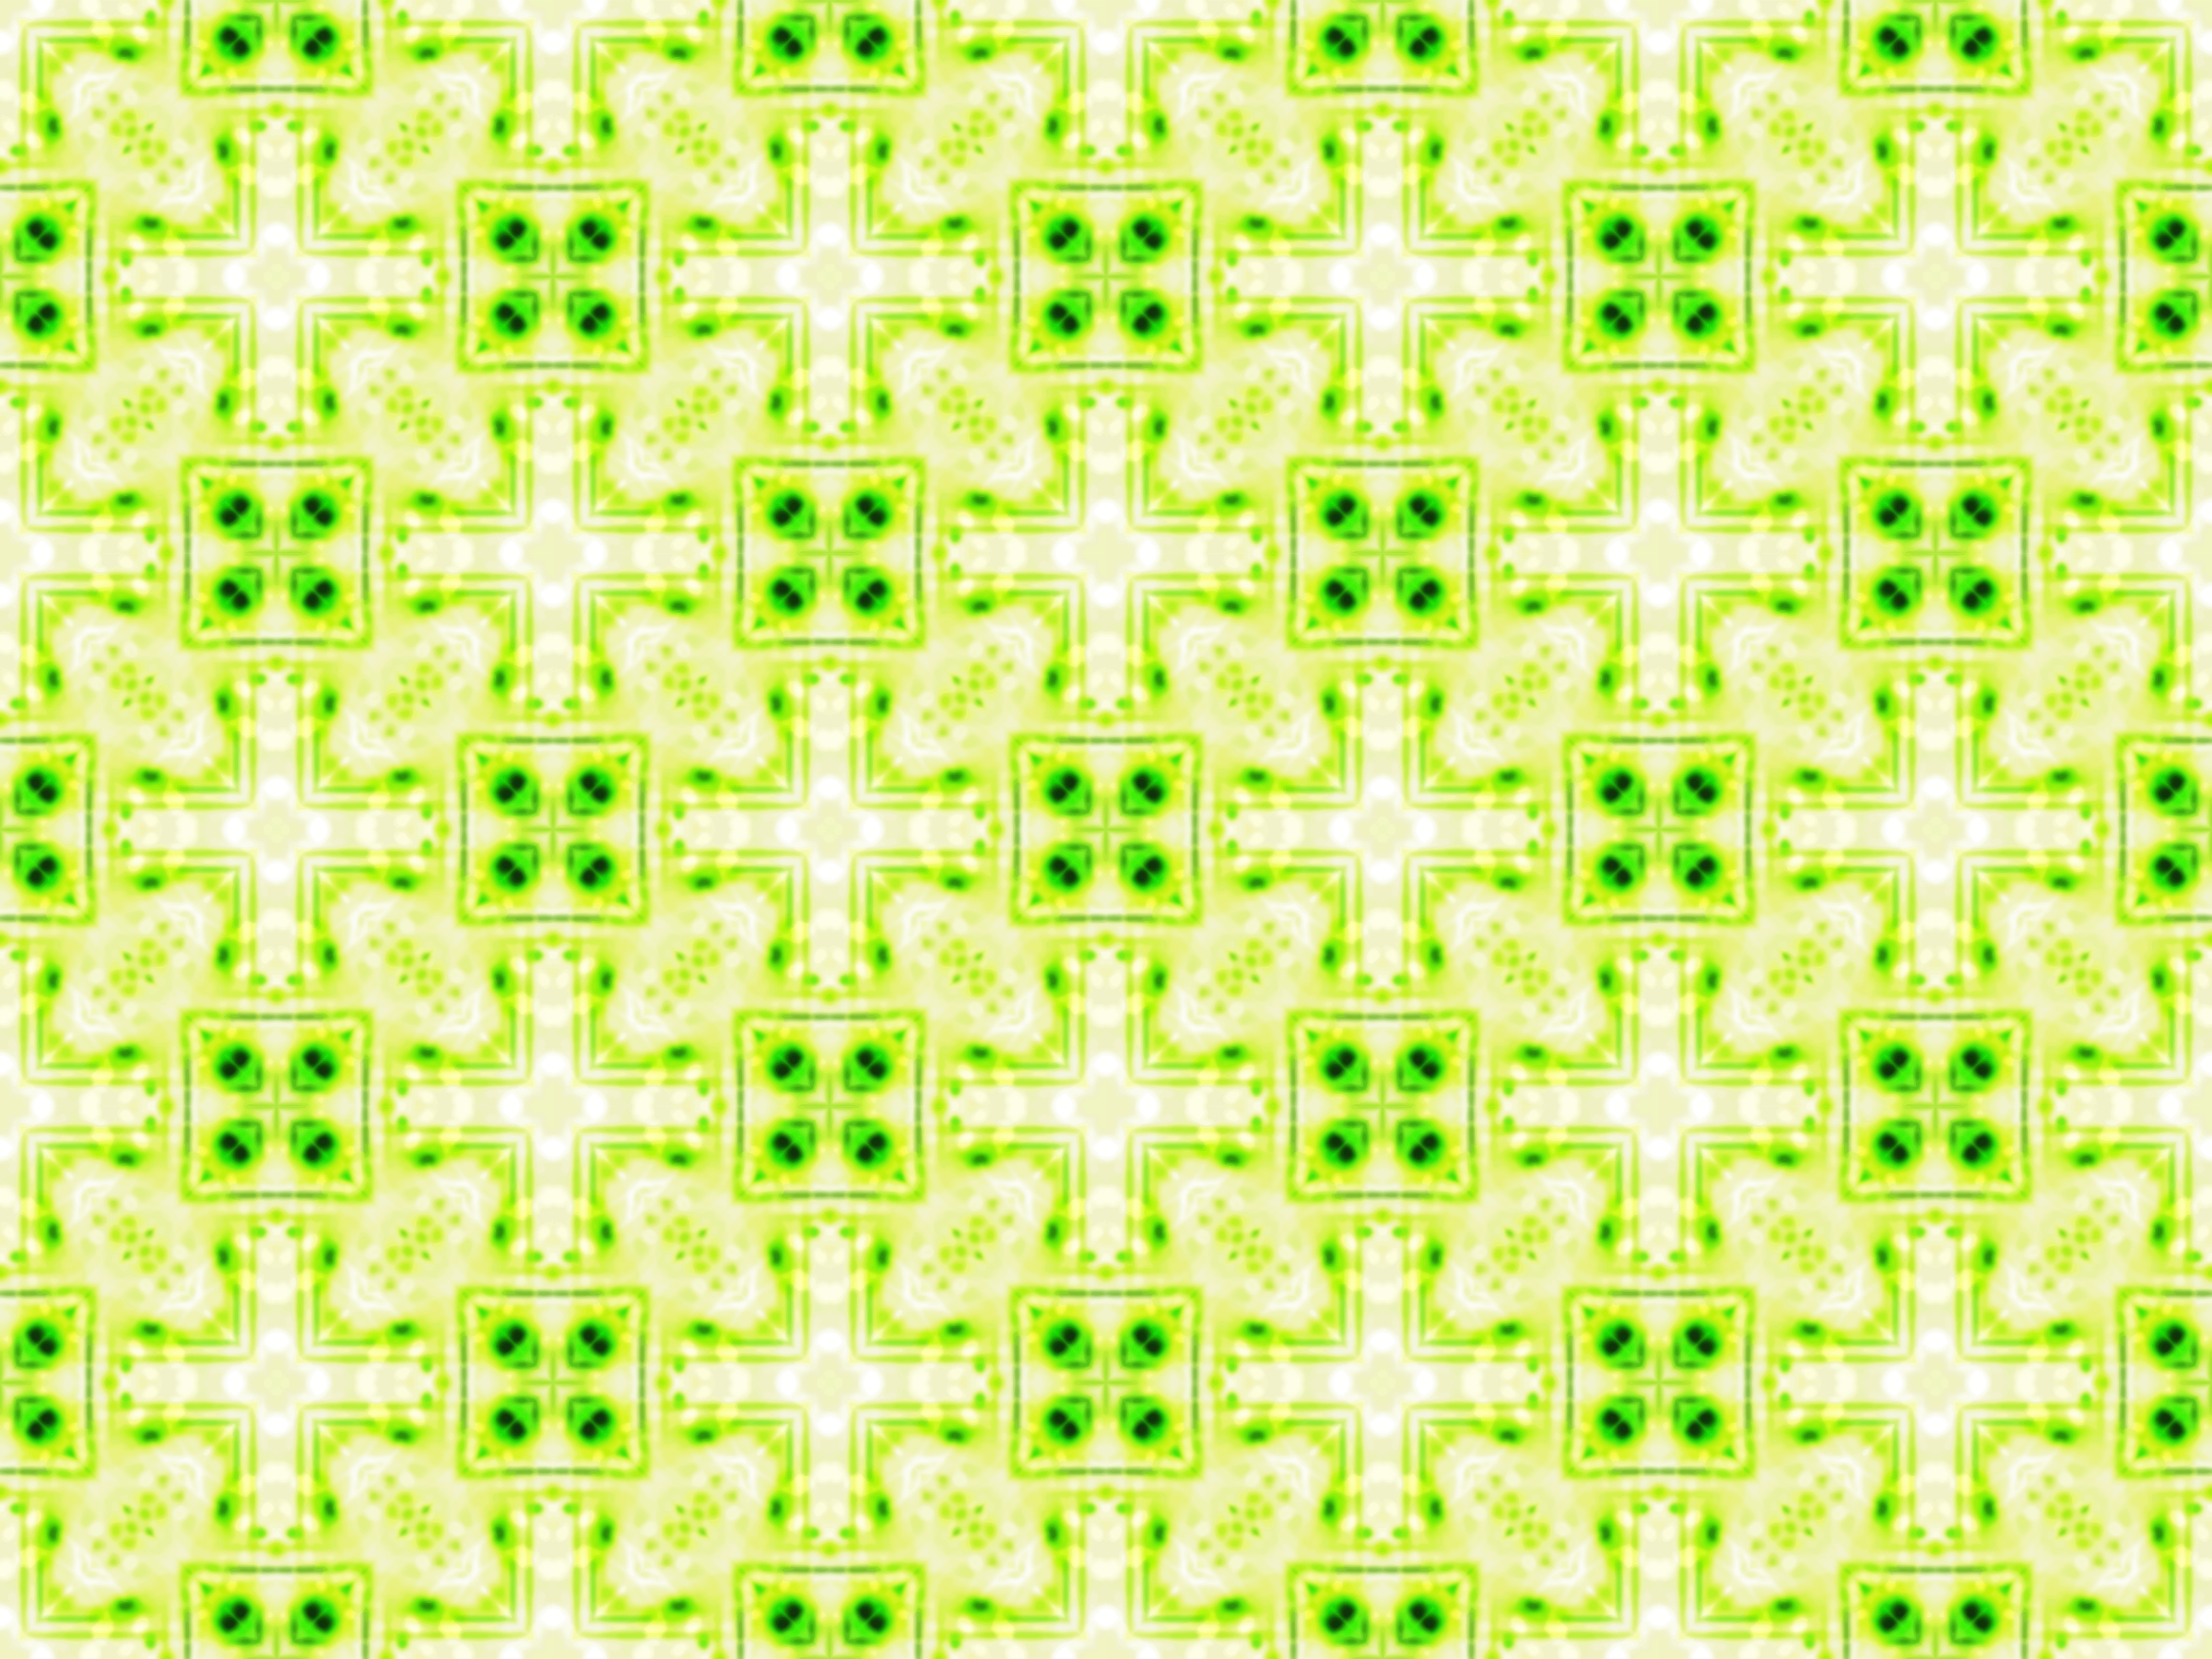 Background pattern 234 (colour 2) by Firkin